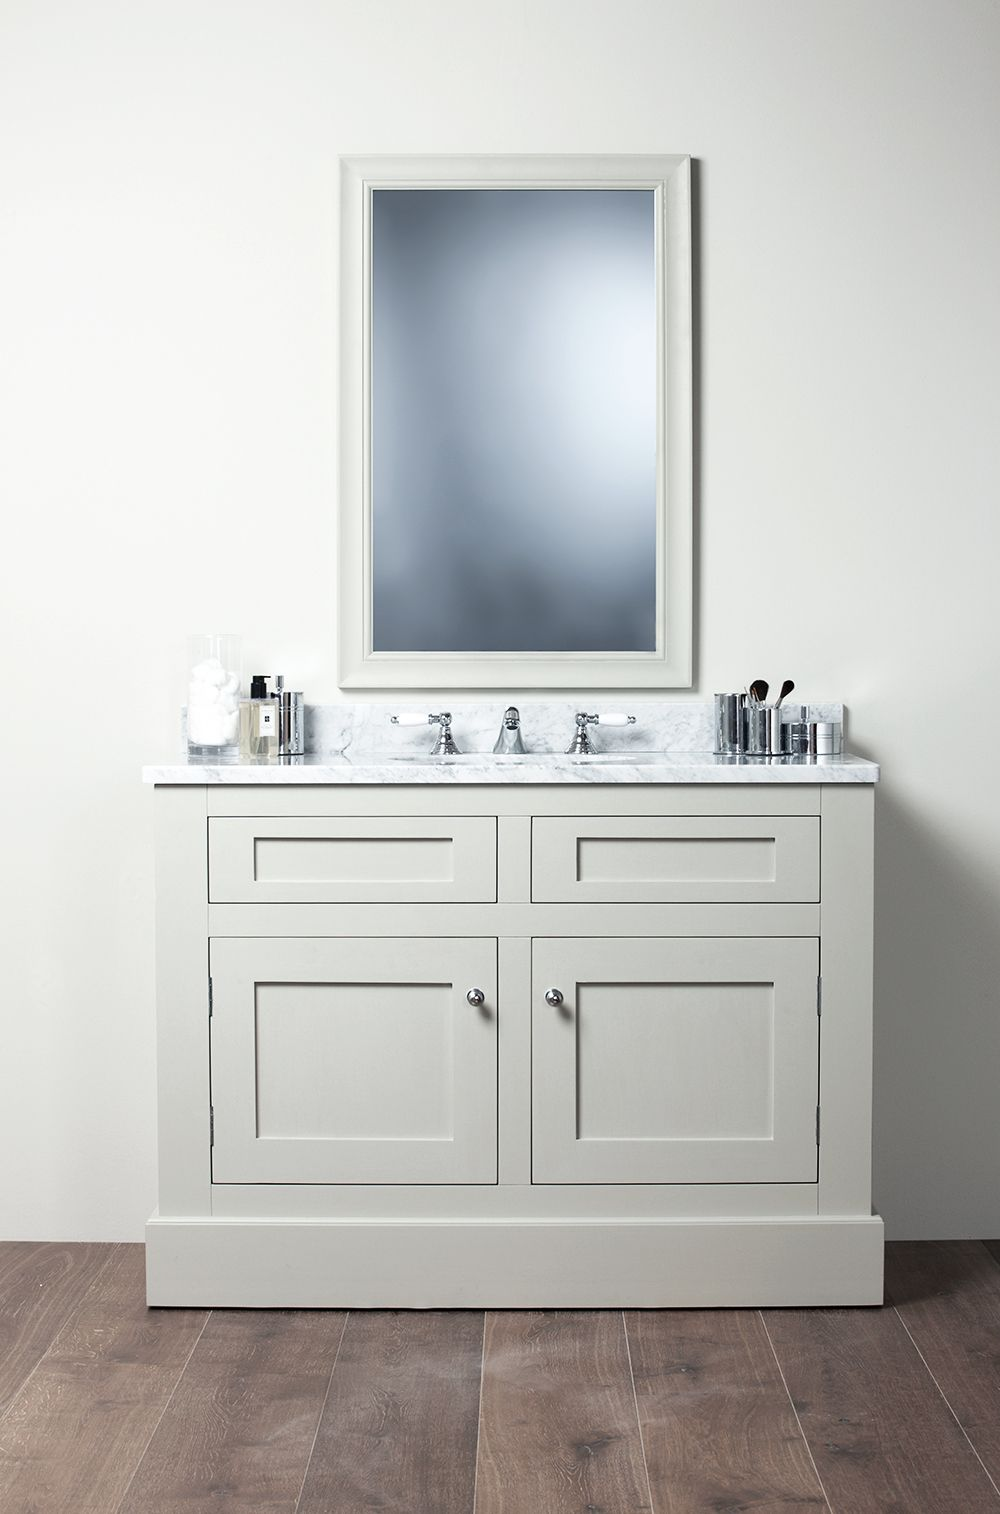 Bathroom sink cabinets white - Shaker Style Bathroom Vanity Unit Shaker Bathroom Vanity Unit Under Sink Cabinet Ebay Home